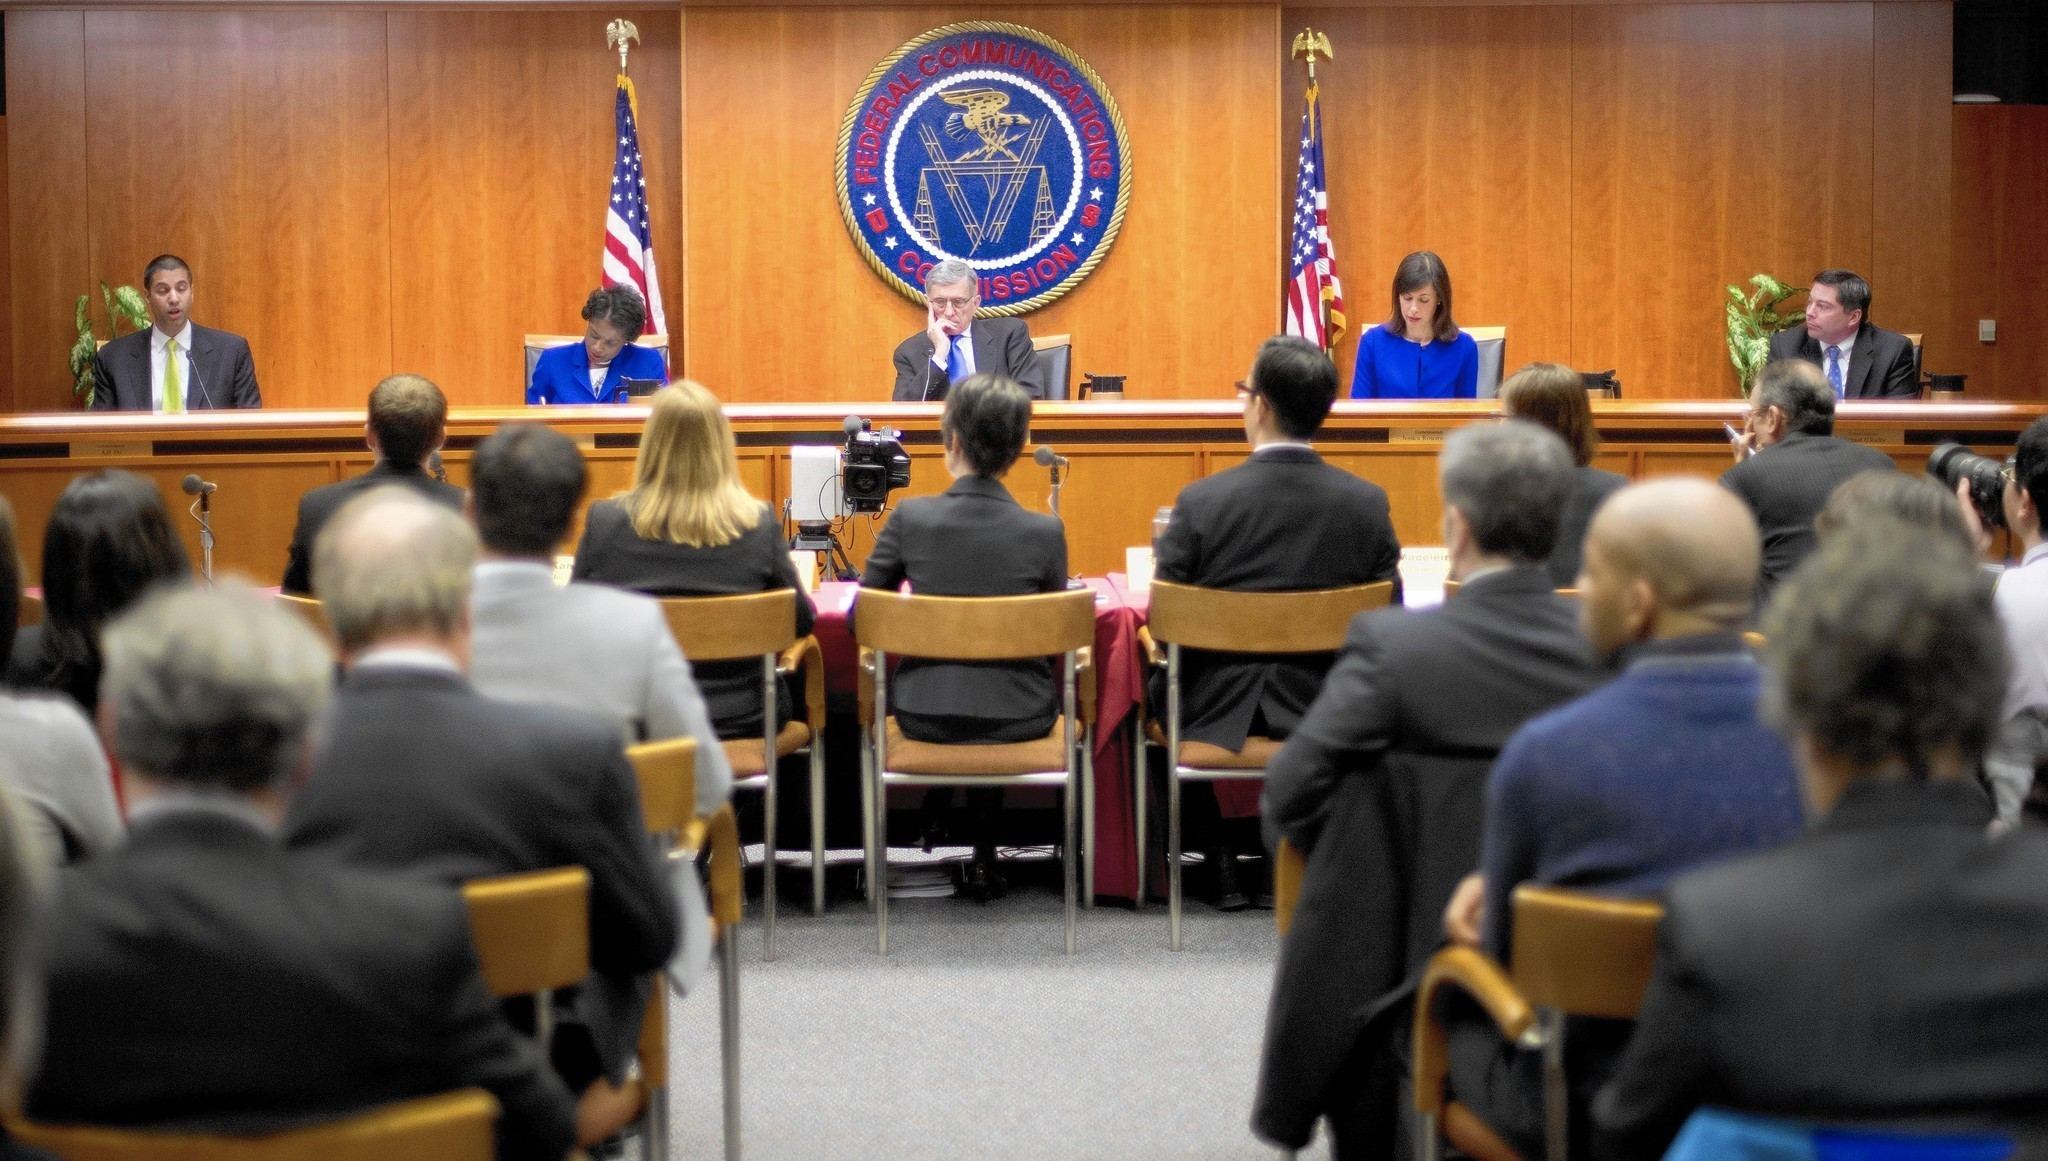 federal communication commissions The federal communications bar association is an organization of attorneys and other professionals, including engineers, consultants, economists and government officials, involved in the development, interpretation and practice of communications and technology law and policy.